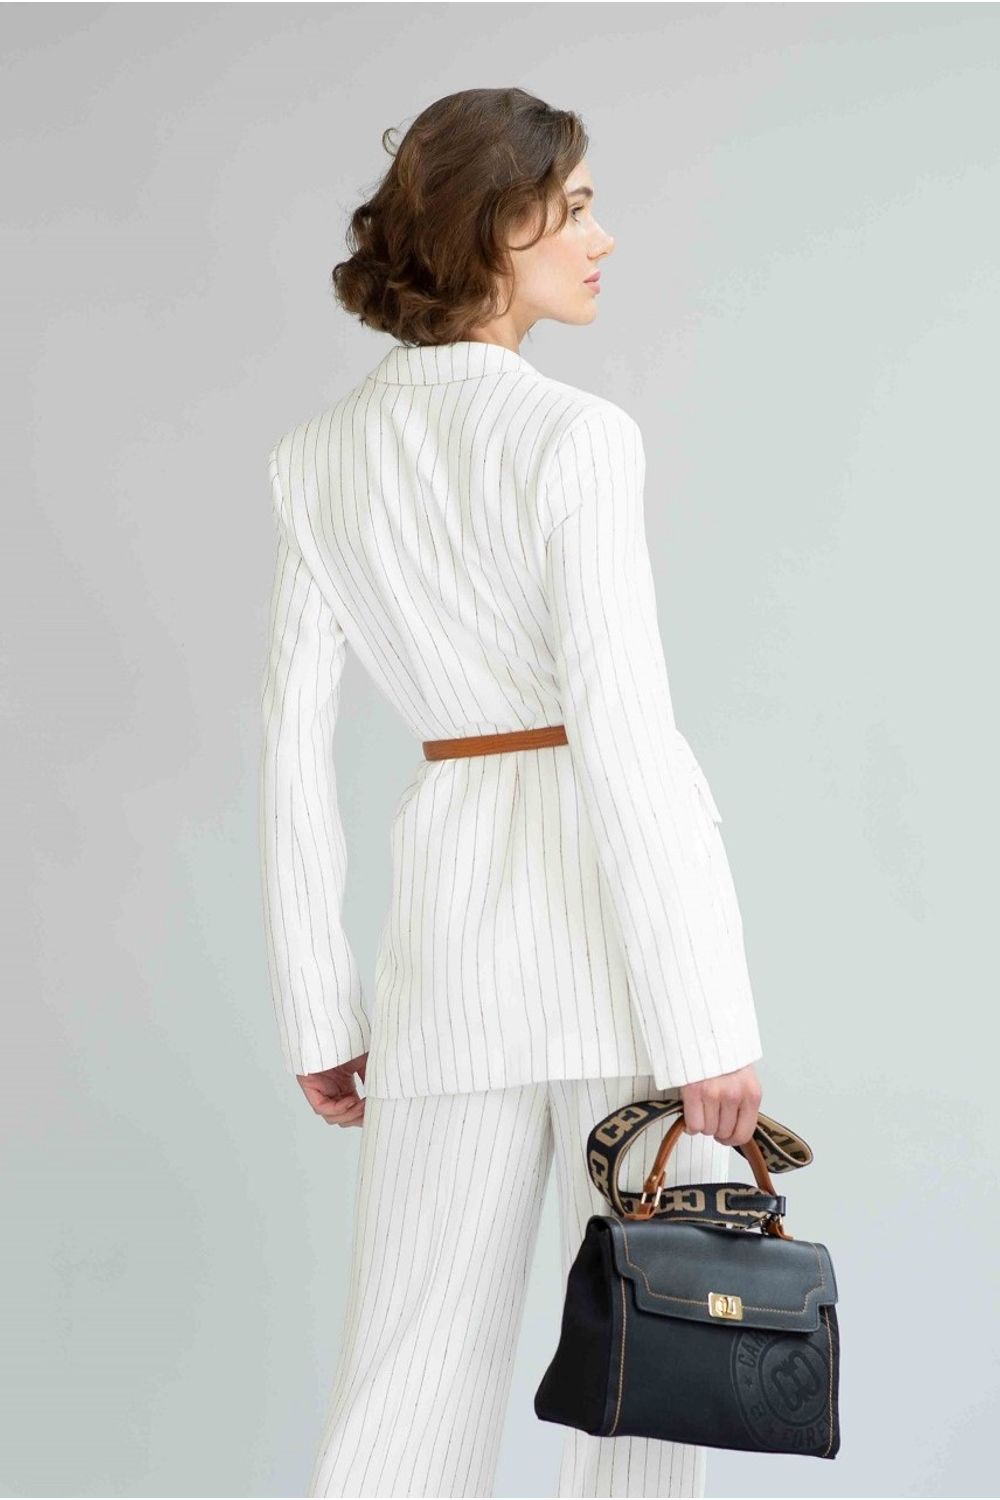 CASACO-BUCLE-OFF-WHITE-F956-COSTAS